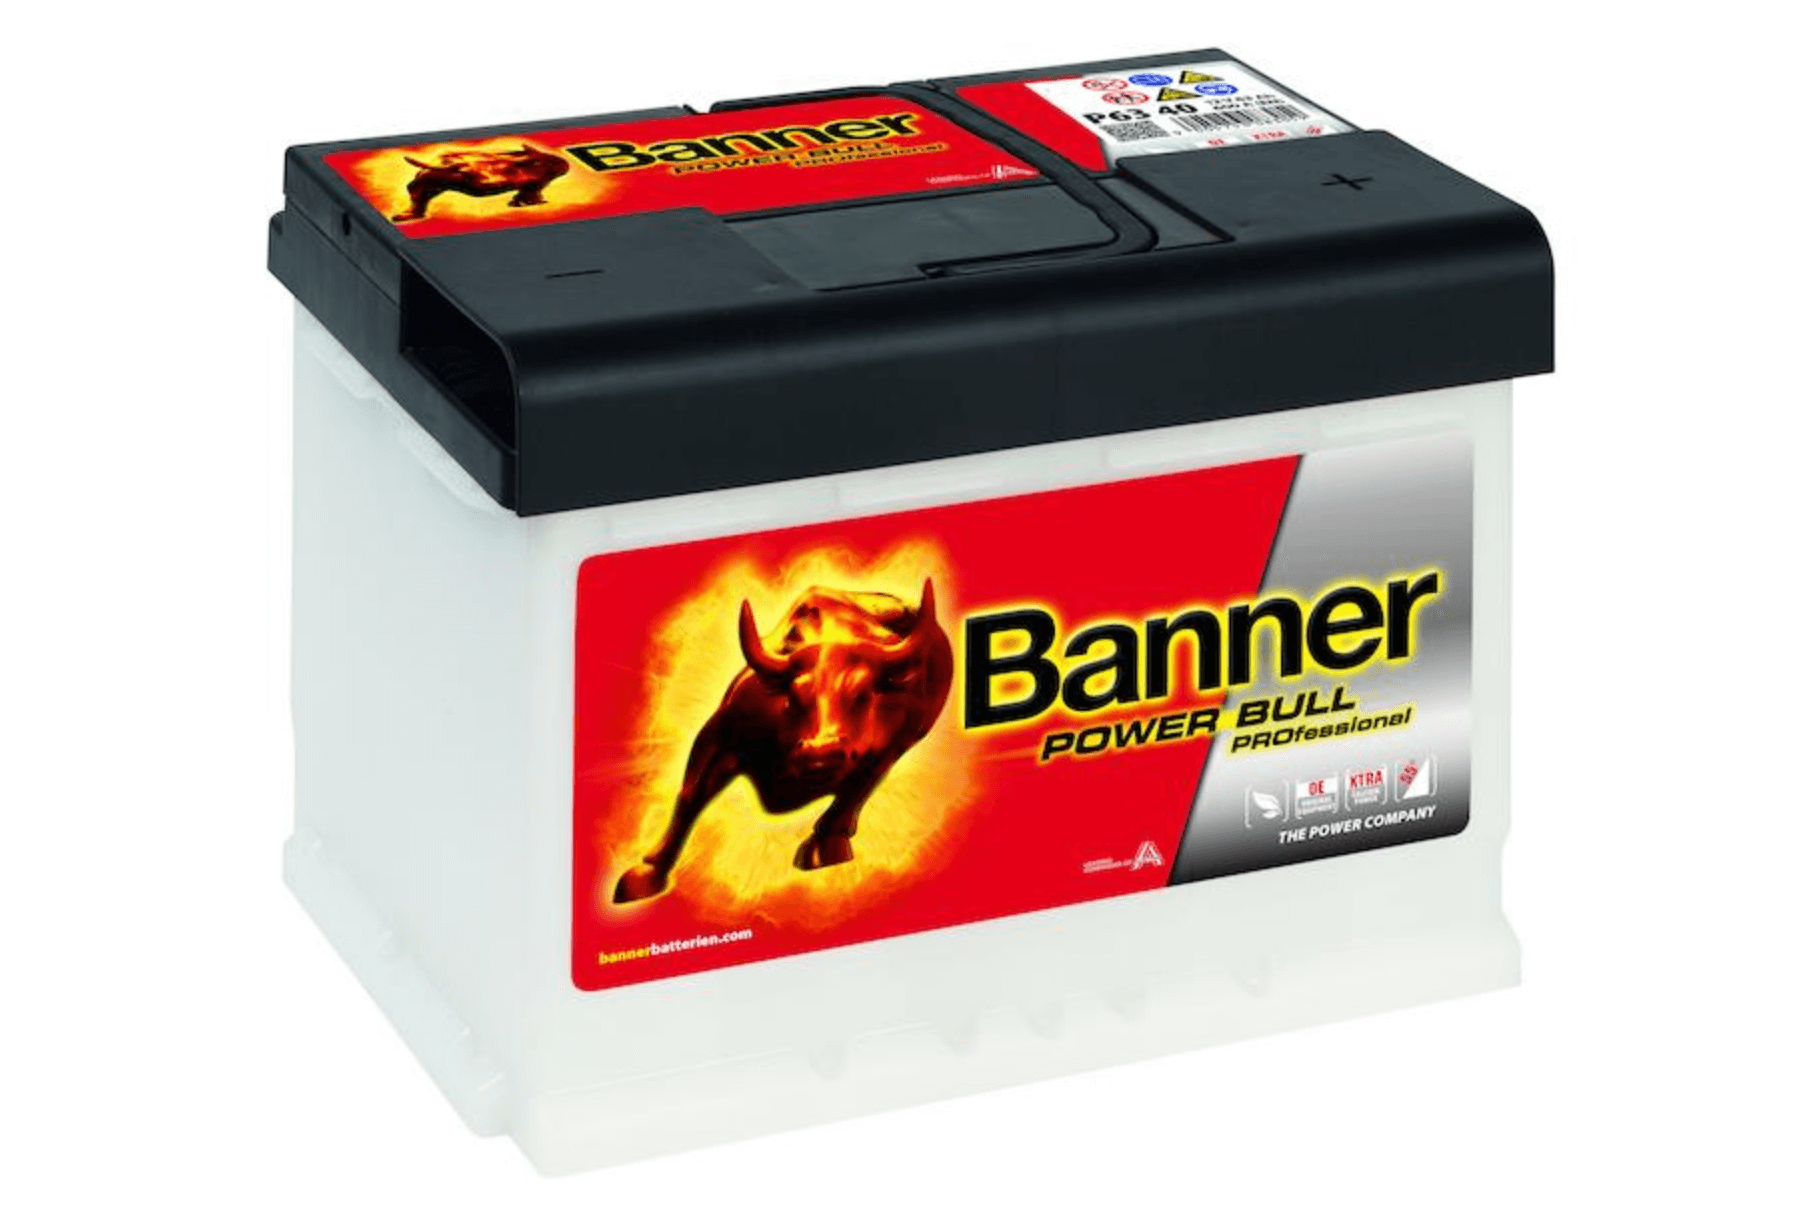 Banner Power Bull Professional 12V 63Ah 620A